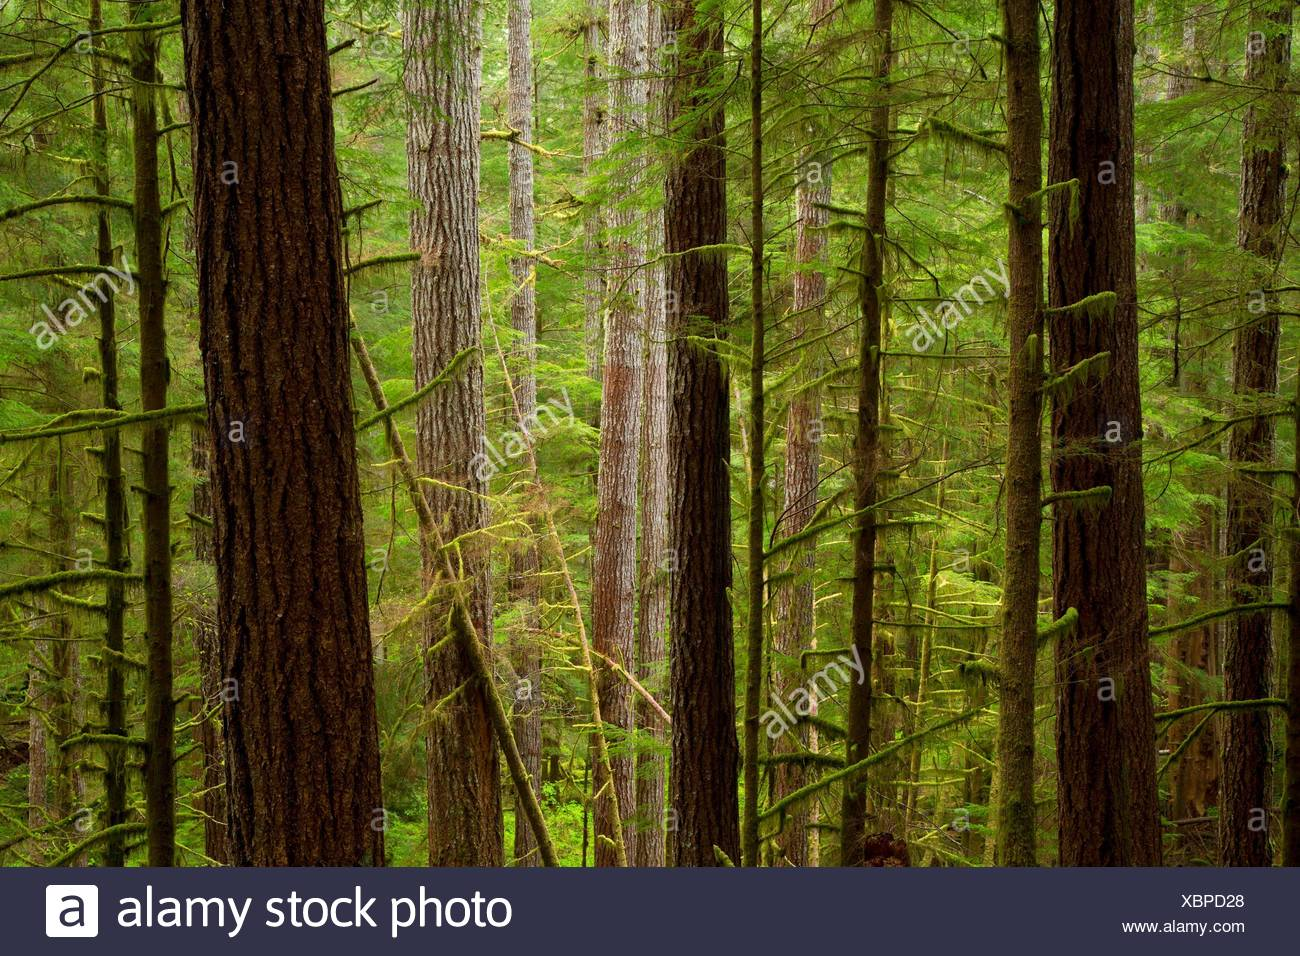 Ancient forest along Harris Ranch Trail, Drift Creek Wilderness, Siuslaw National Forest, Oregon. - Stock Image